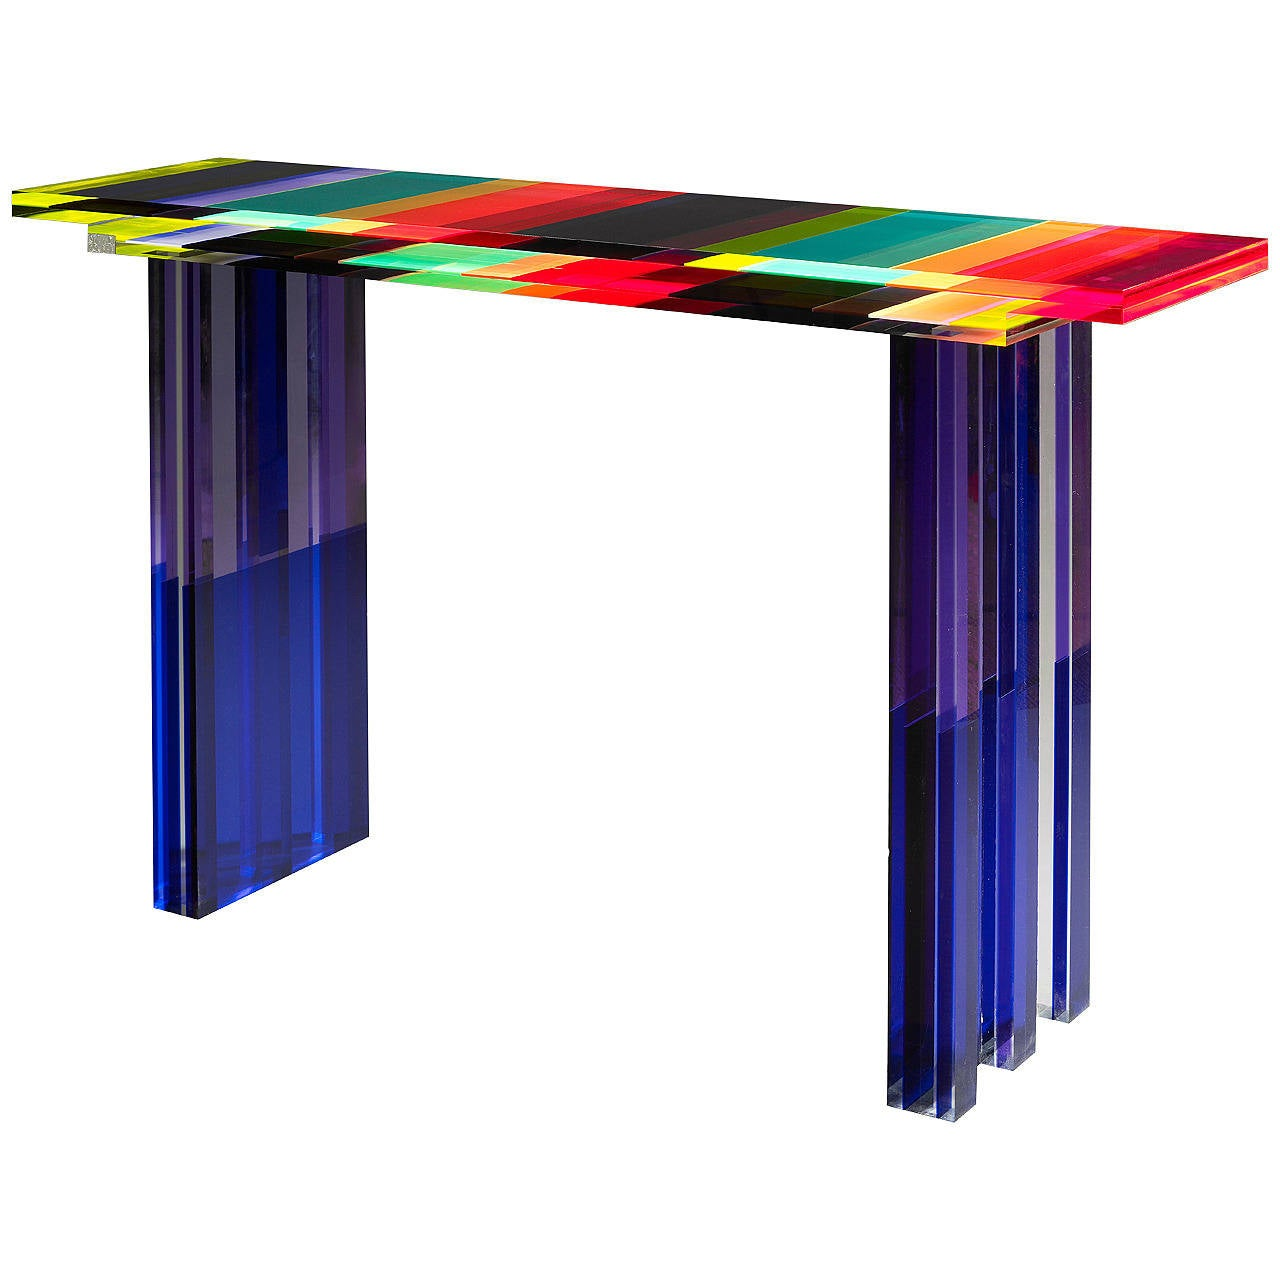 Unique Colorful Console Table By Charly Bounan At 1stdibs